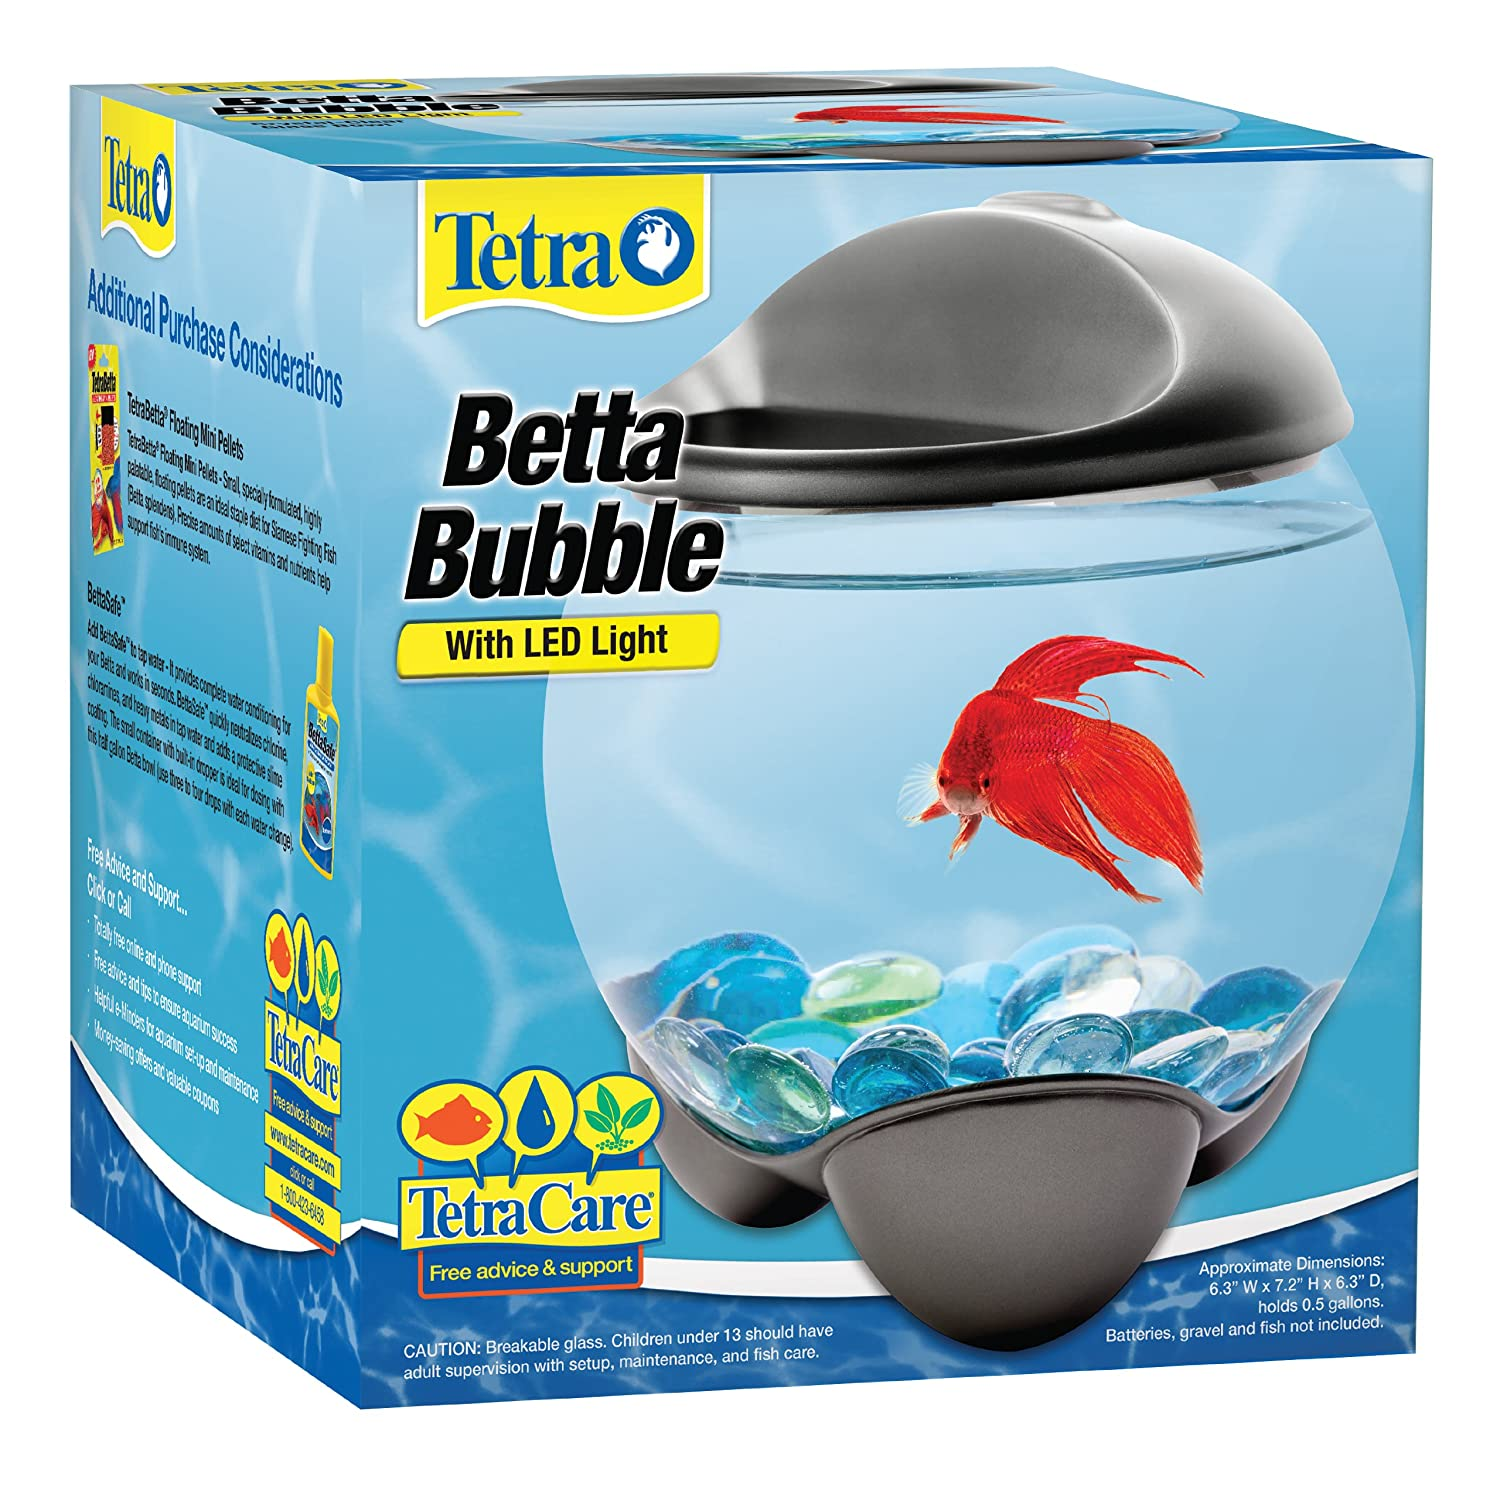 91PTh9nR6pL._SL1500_ amazon com tetra 29263 betta bubble betta bowl with led light  at crackthecode.co